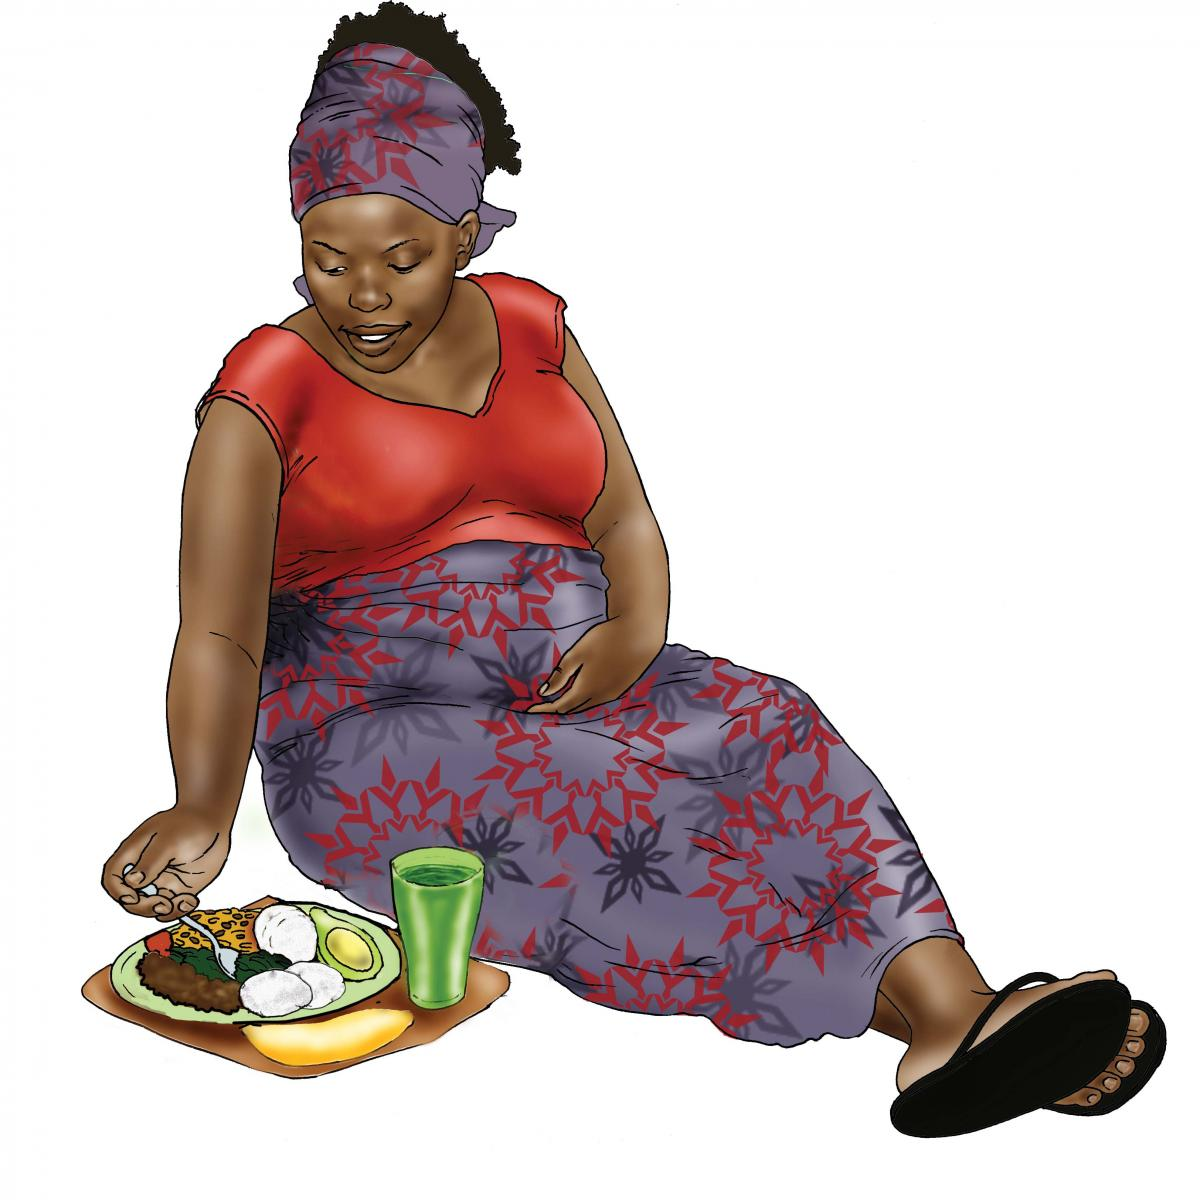 Maternal Nutrition - Pregnant woman eating healthy meal - 02 - Nigeria